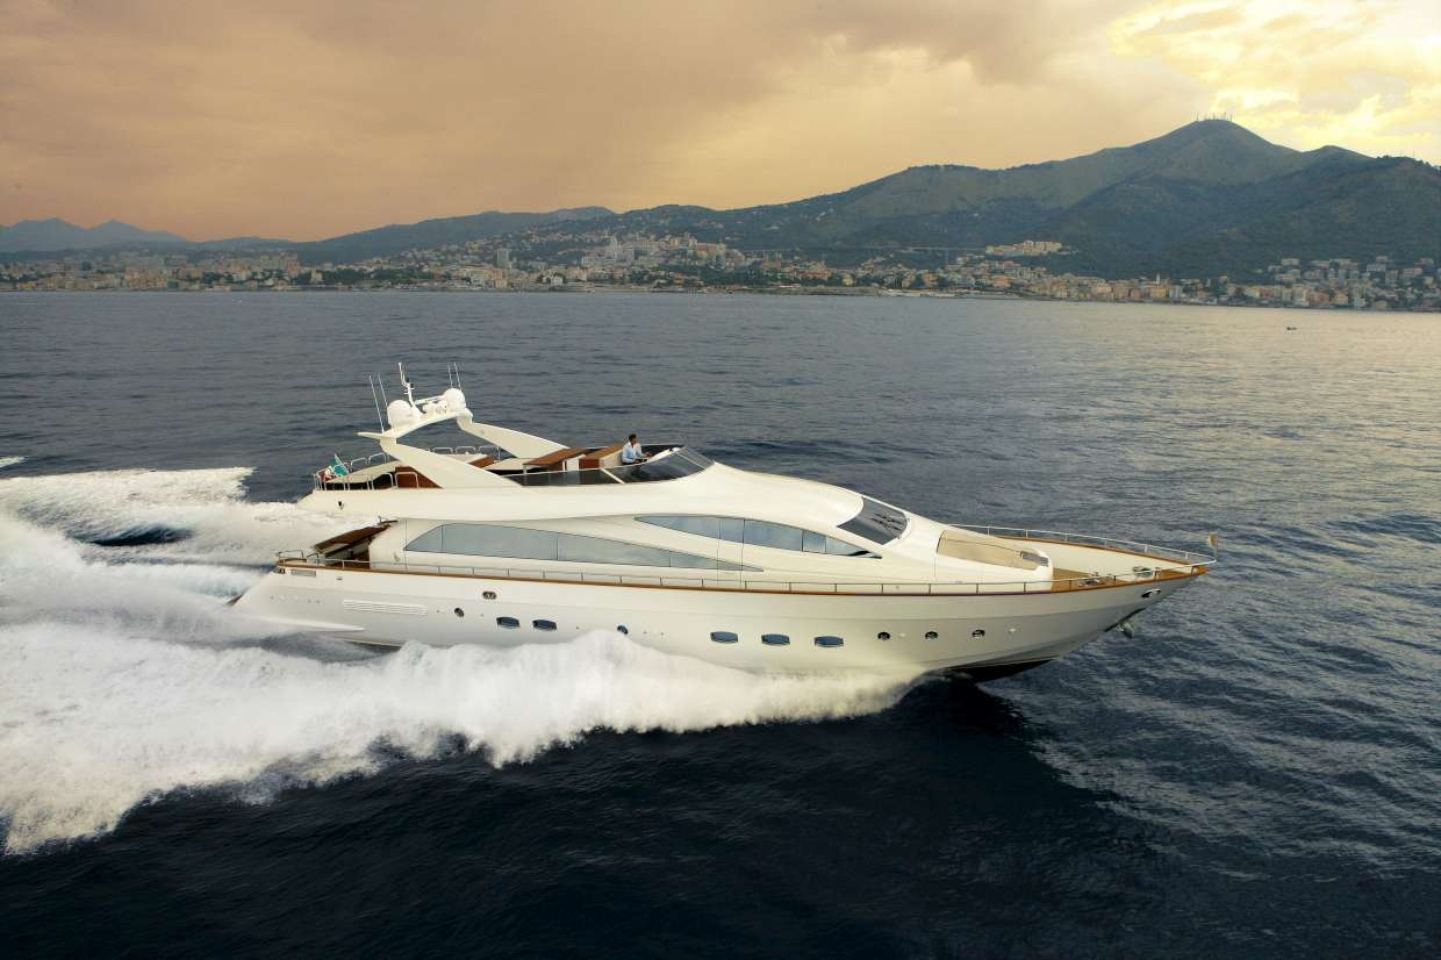 In preview the Yacht Amer 92' Deluxe